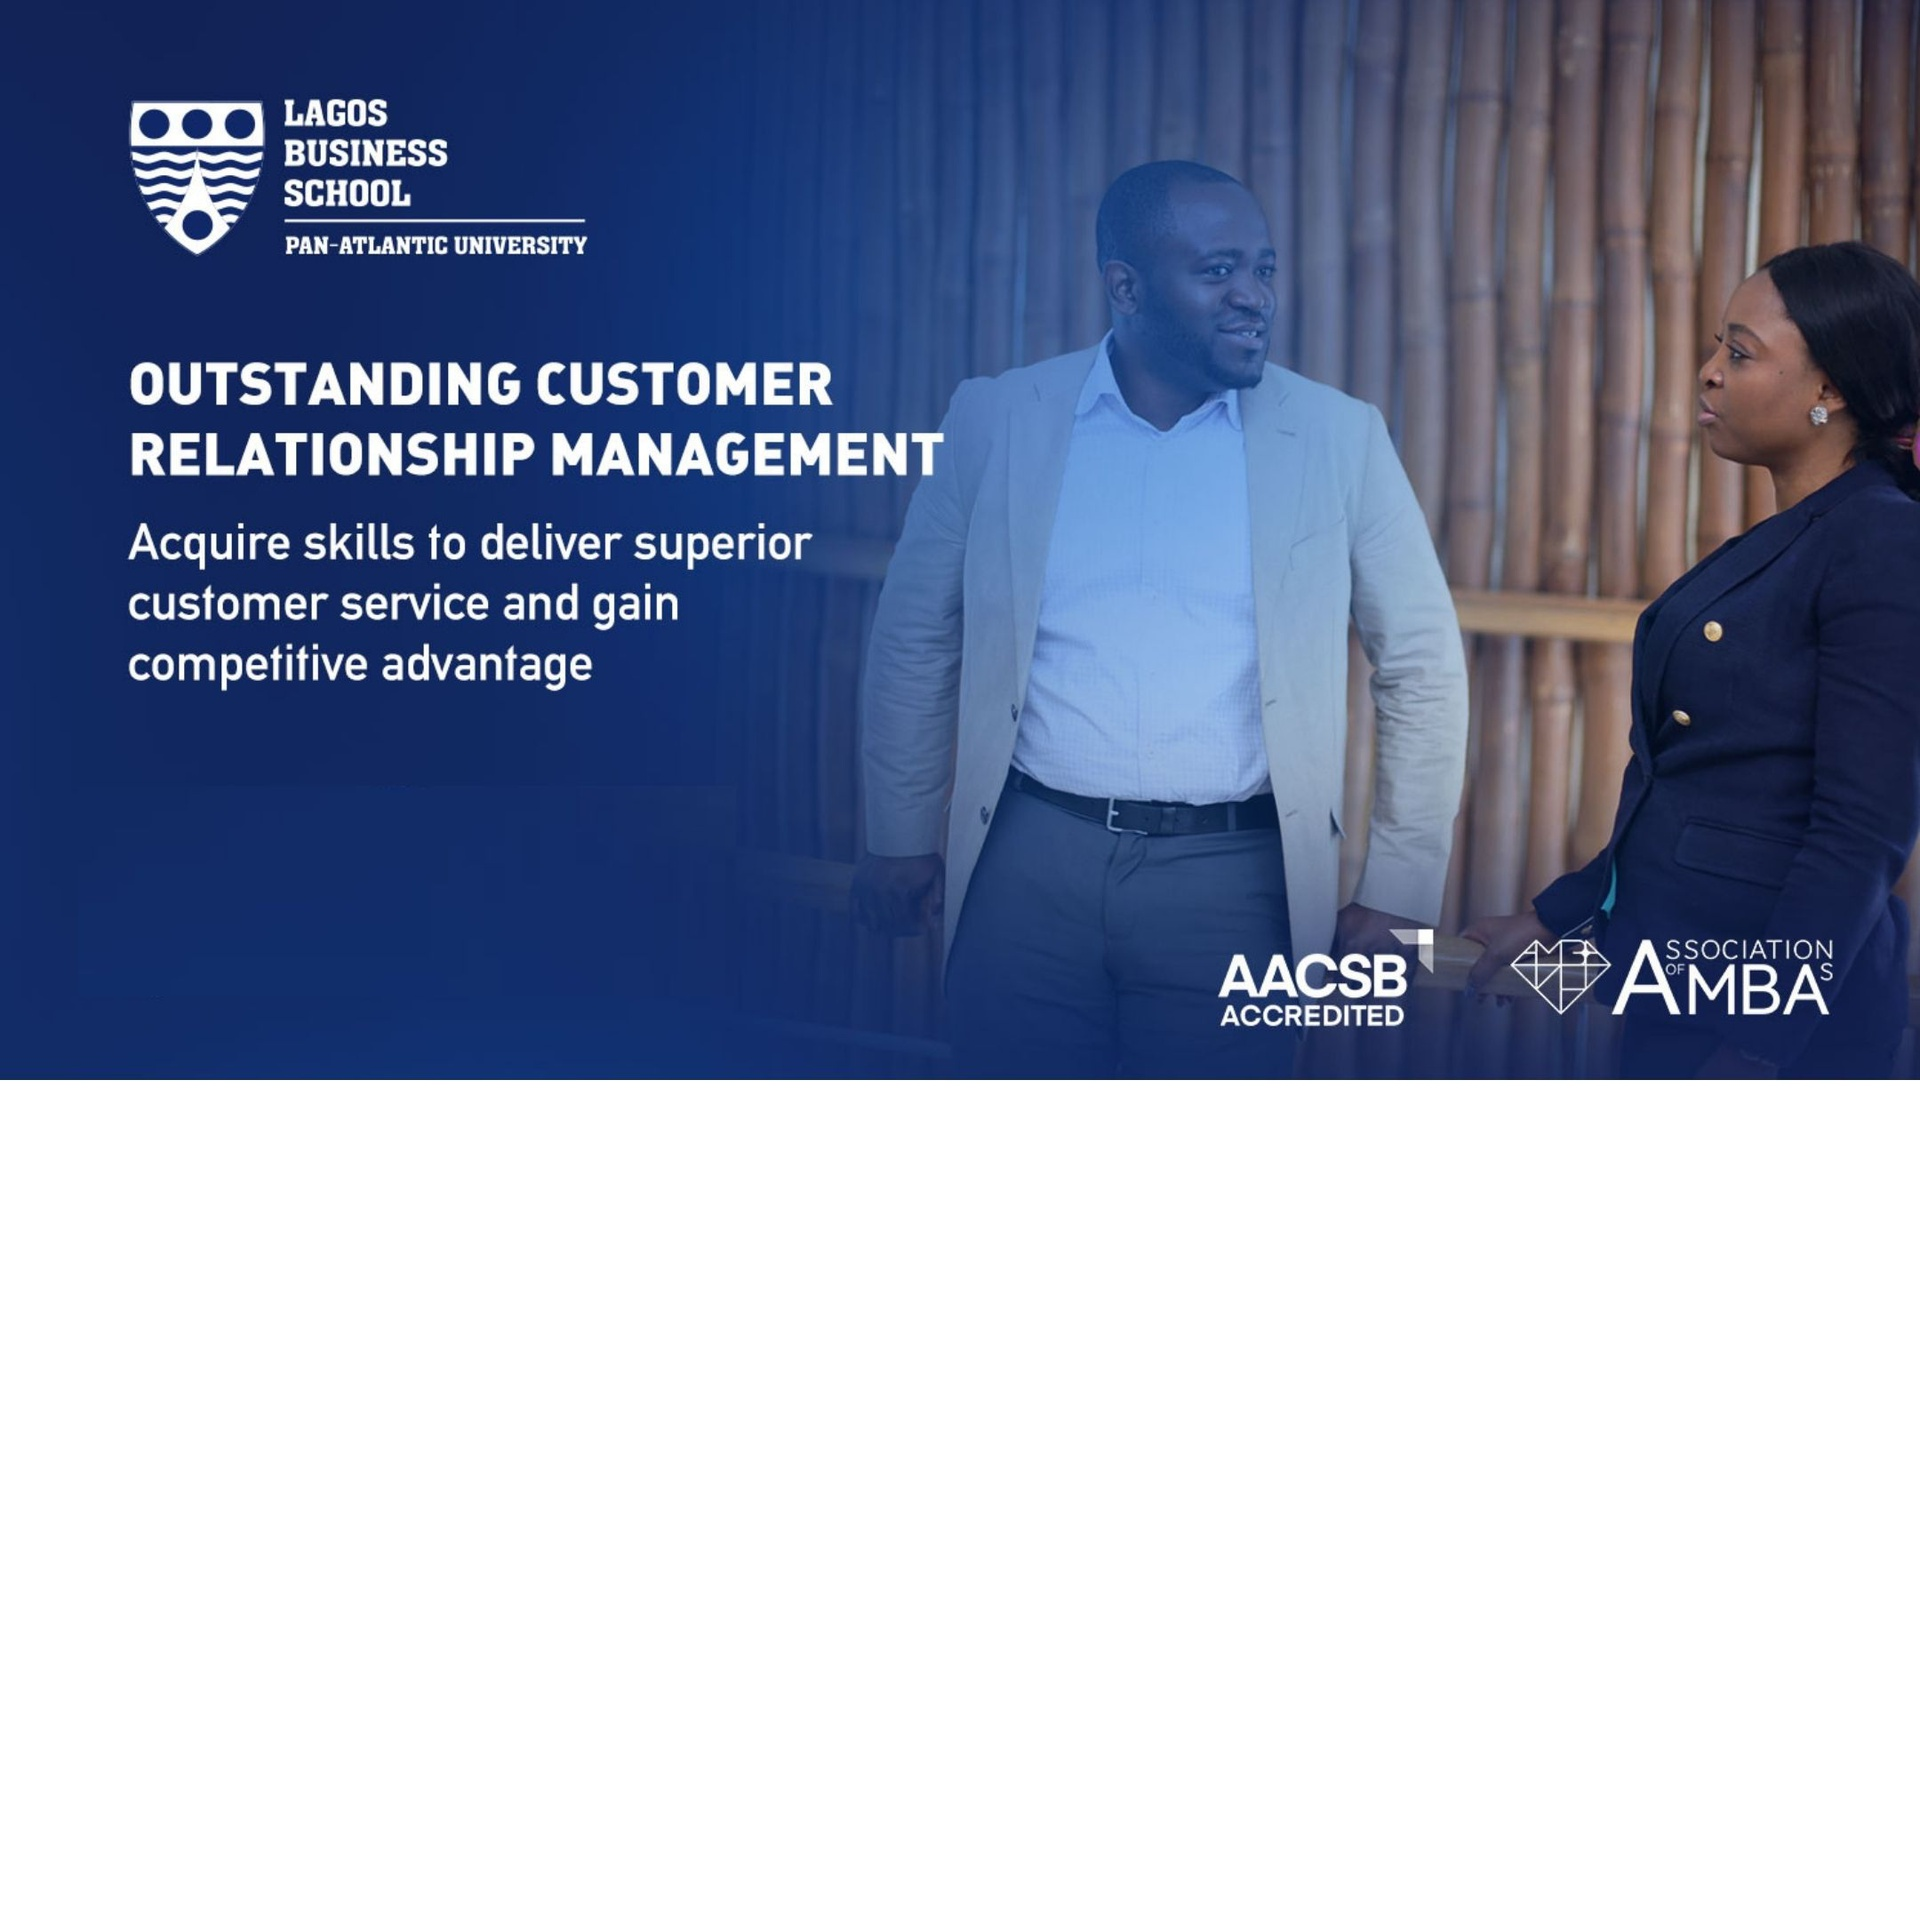 Outstanding Customer Relationship Management